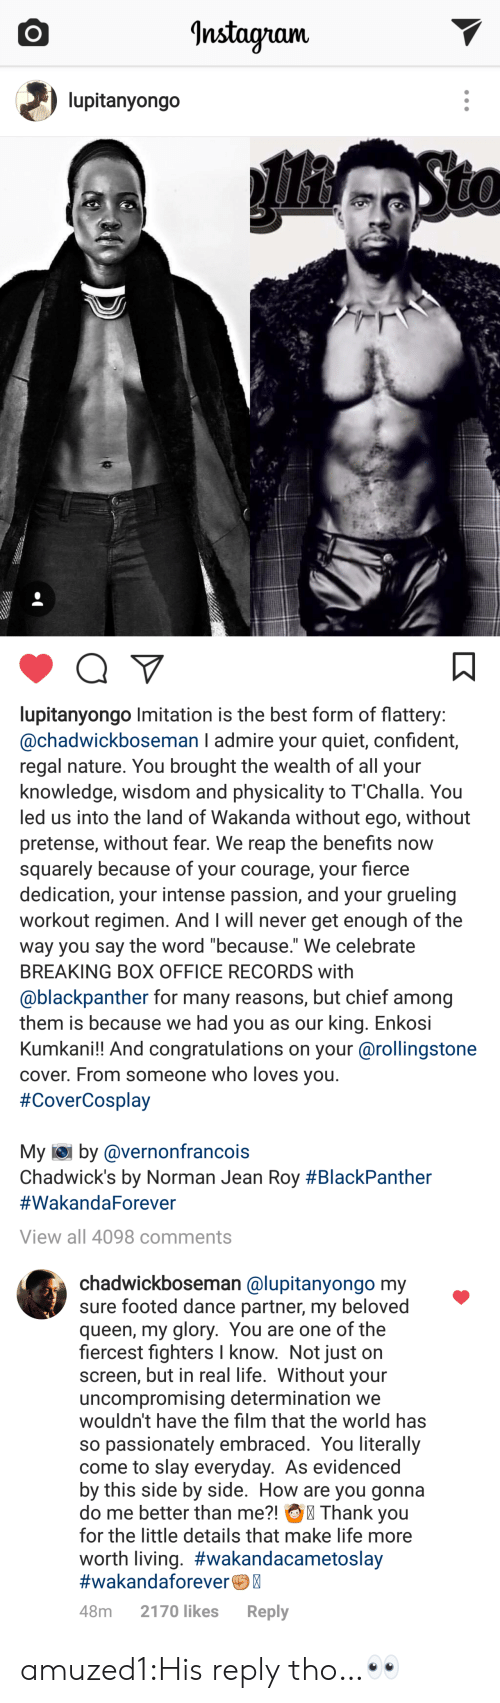 "pretense: Instayram.  lupitanyongo   lupitanyongo Imitation is the best form of flattery  @chadwickboseman I admire your quiet, confident,  regal nature. You brought the wealth of all your  knowledge, wisdom and physicality to 1""Challa. You  led us into the land of Wakanda without ego, without  pretense, without fear. We reap the benefits now  squarely because of your courage, your fierce  dedication, your intense passion, and your grueling  workout regimen. And I will never get enough of the  way you say the word because. We celebrate  BREAKING BOX OFFICE RECORDS with  @blackpanther for many reasons, but chief among  them is because we had you as our king. Enkosi  Kumkani!! And congratulations on your @rollingstone  cover. From someone who loves you  #CoverCosplay  My iei by @vernonfrancois  Chadwick's by Norman Jean Roy #BlackPanther  #WakandaForever  View all 4098 comments   chadwickboseman @lupitanyongo my  sure footed dance partner, my beloved  queen, my glory. You are one of the  fiercest fighters I know. Not just on  screen, but in real life. Without your  uncompromising determination we  wouldn't have the film that the world has  so passionately embraced. You literally  come to slay everyday. As evidenced  by this side by side. How are you gonna  do me better than me?! Thank you  for the little details that make life more  worth living. #wakandacametoslay  #wakandaforeverC  48m 2170 likes Reply amuzed1:His reply tho…👀"